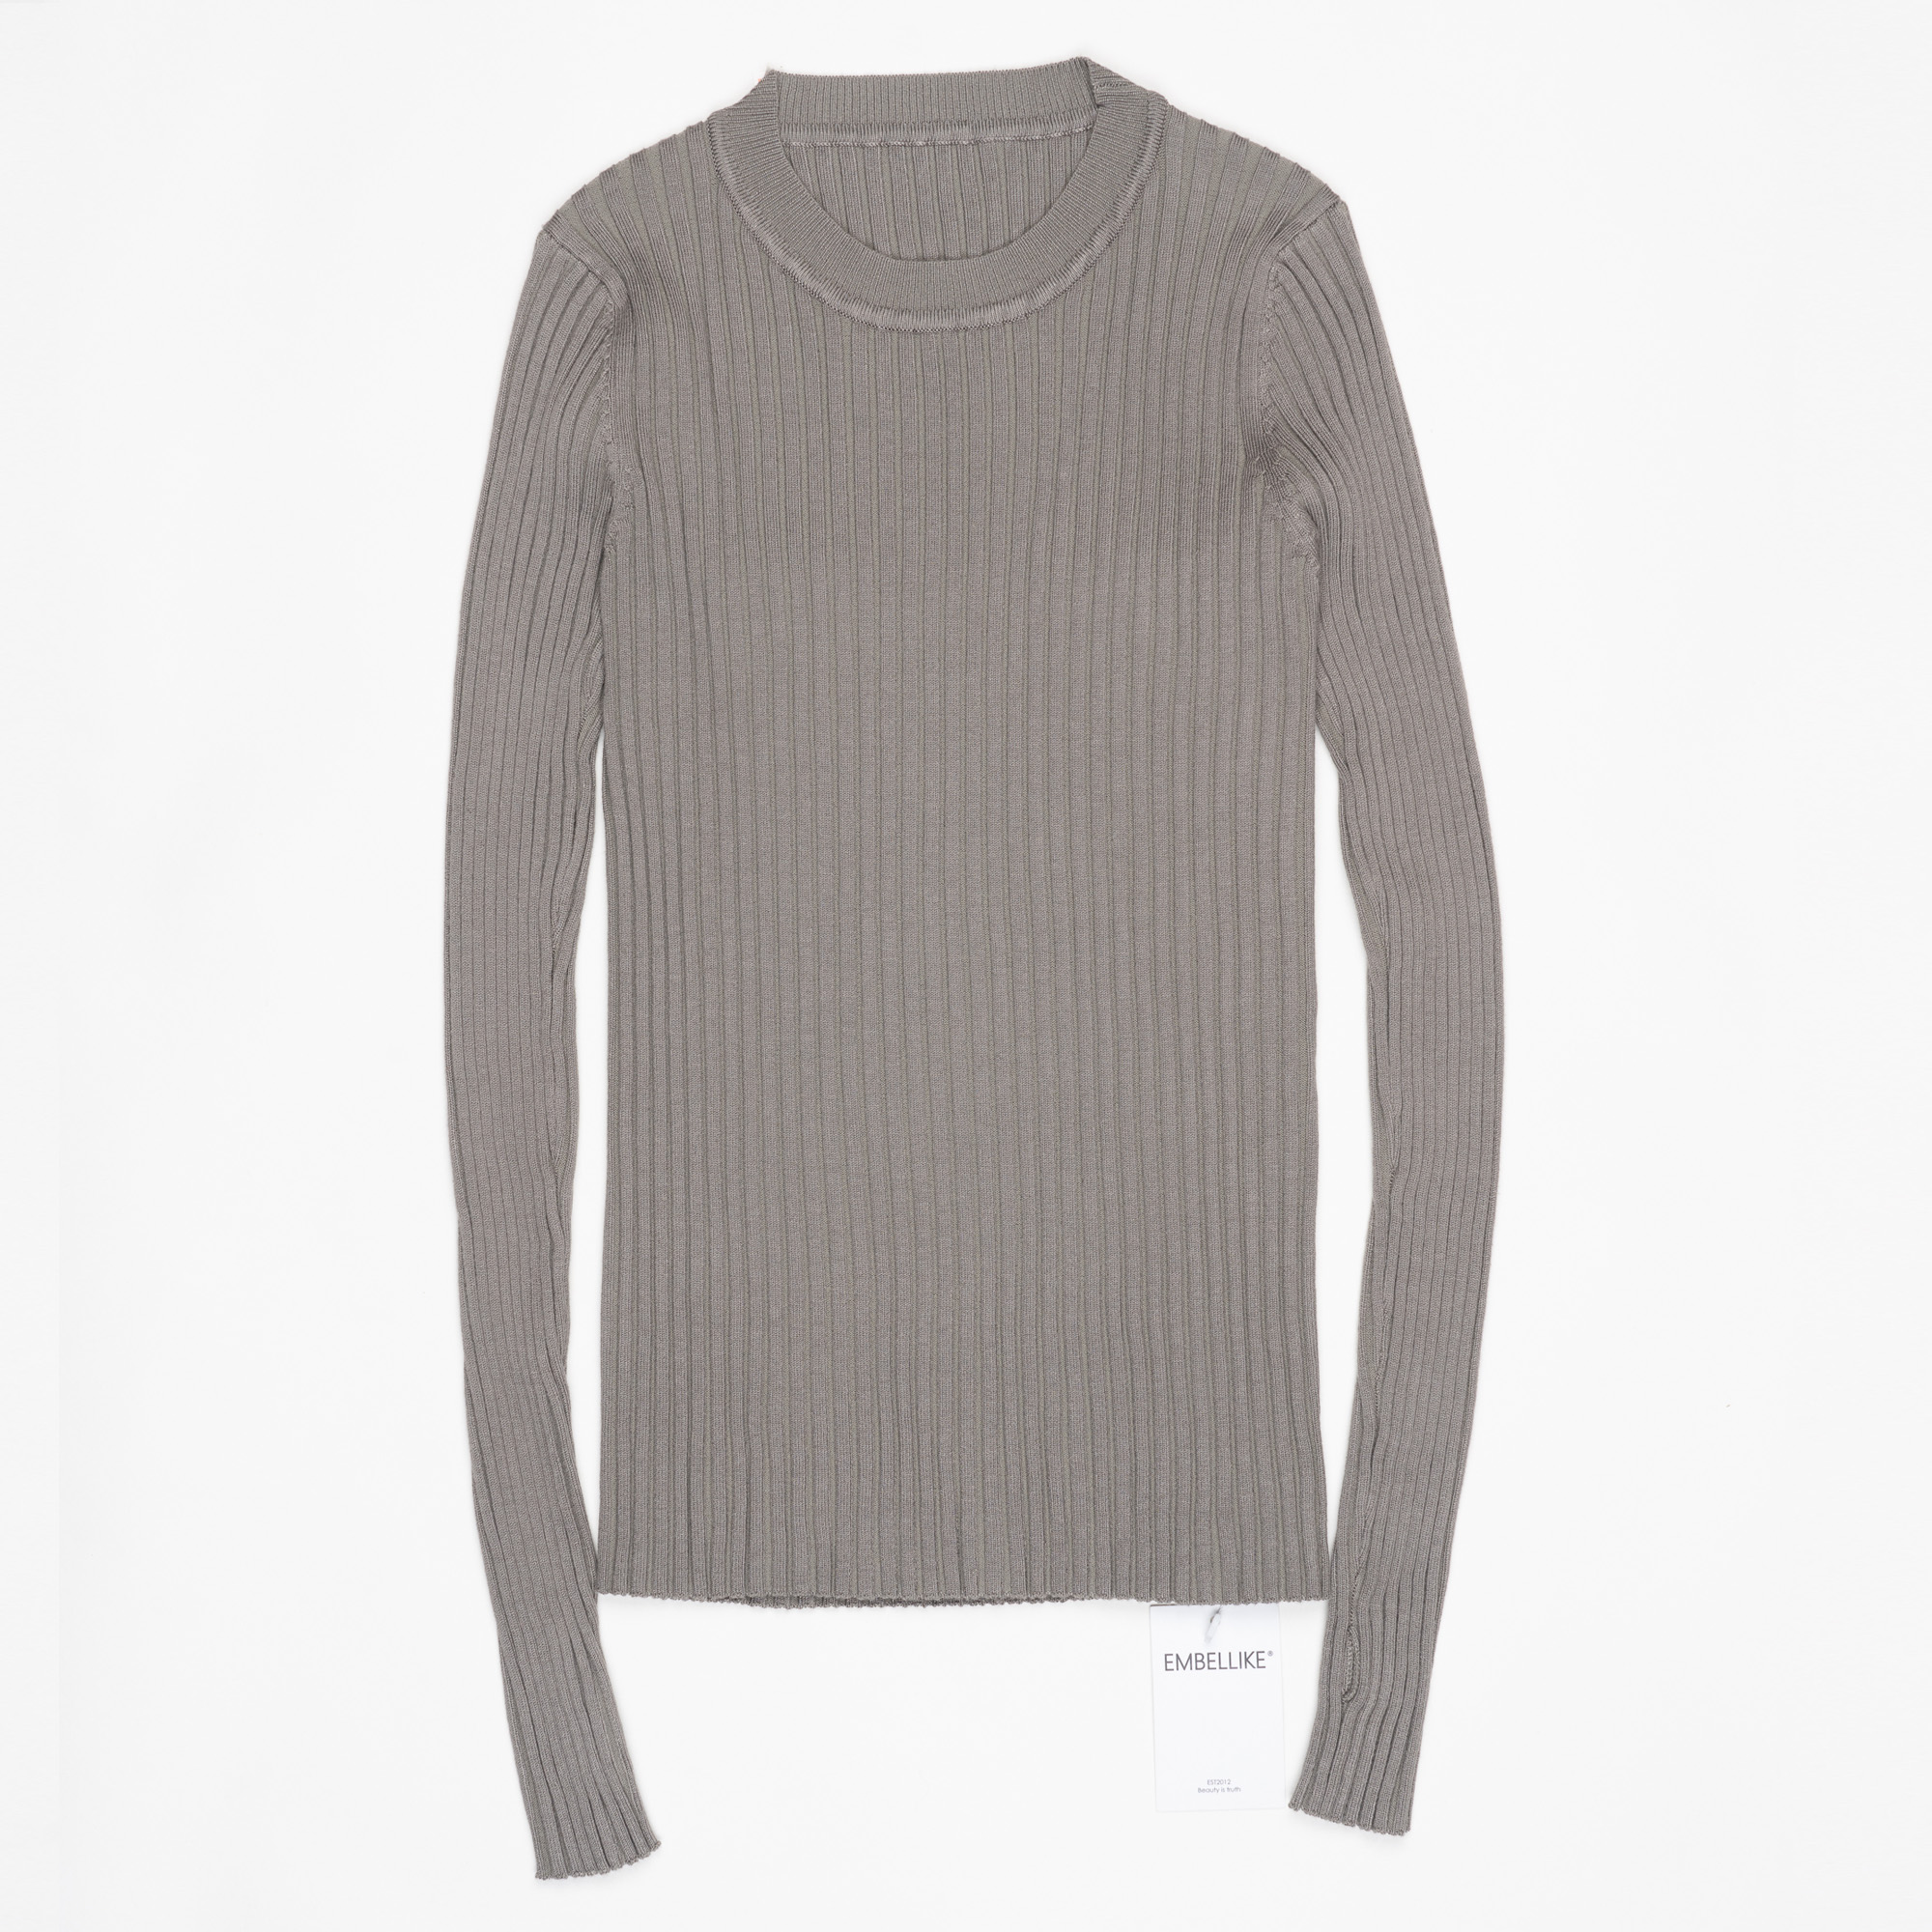 Women Sweater Pullover Basic Ribbed Sweaters Cotton Tops Knitted Solid Crew Neck With Thumb Hole 24